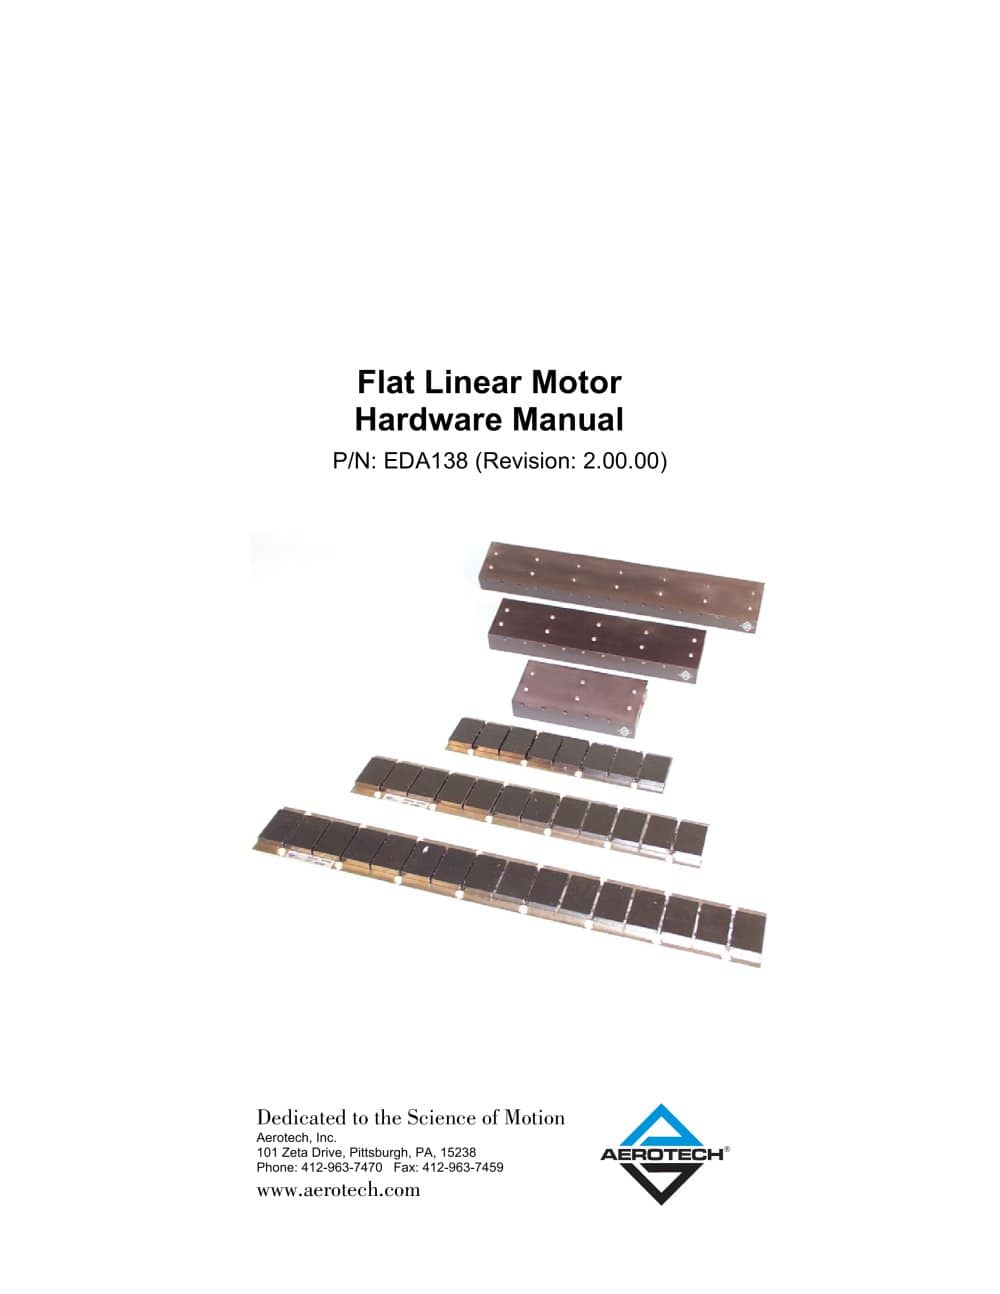 Flat Linear Motor Hardware - 1 / 48 Pages